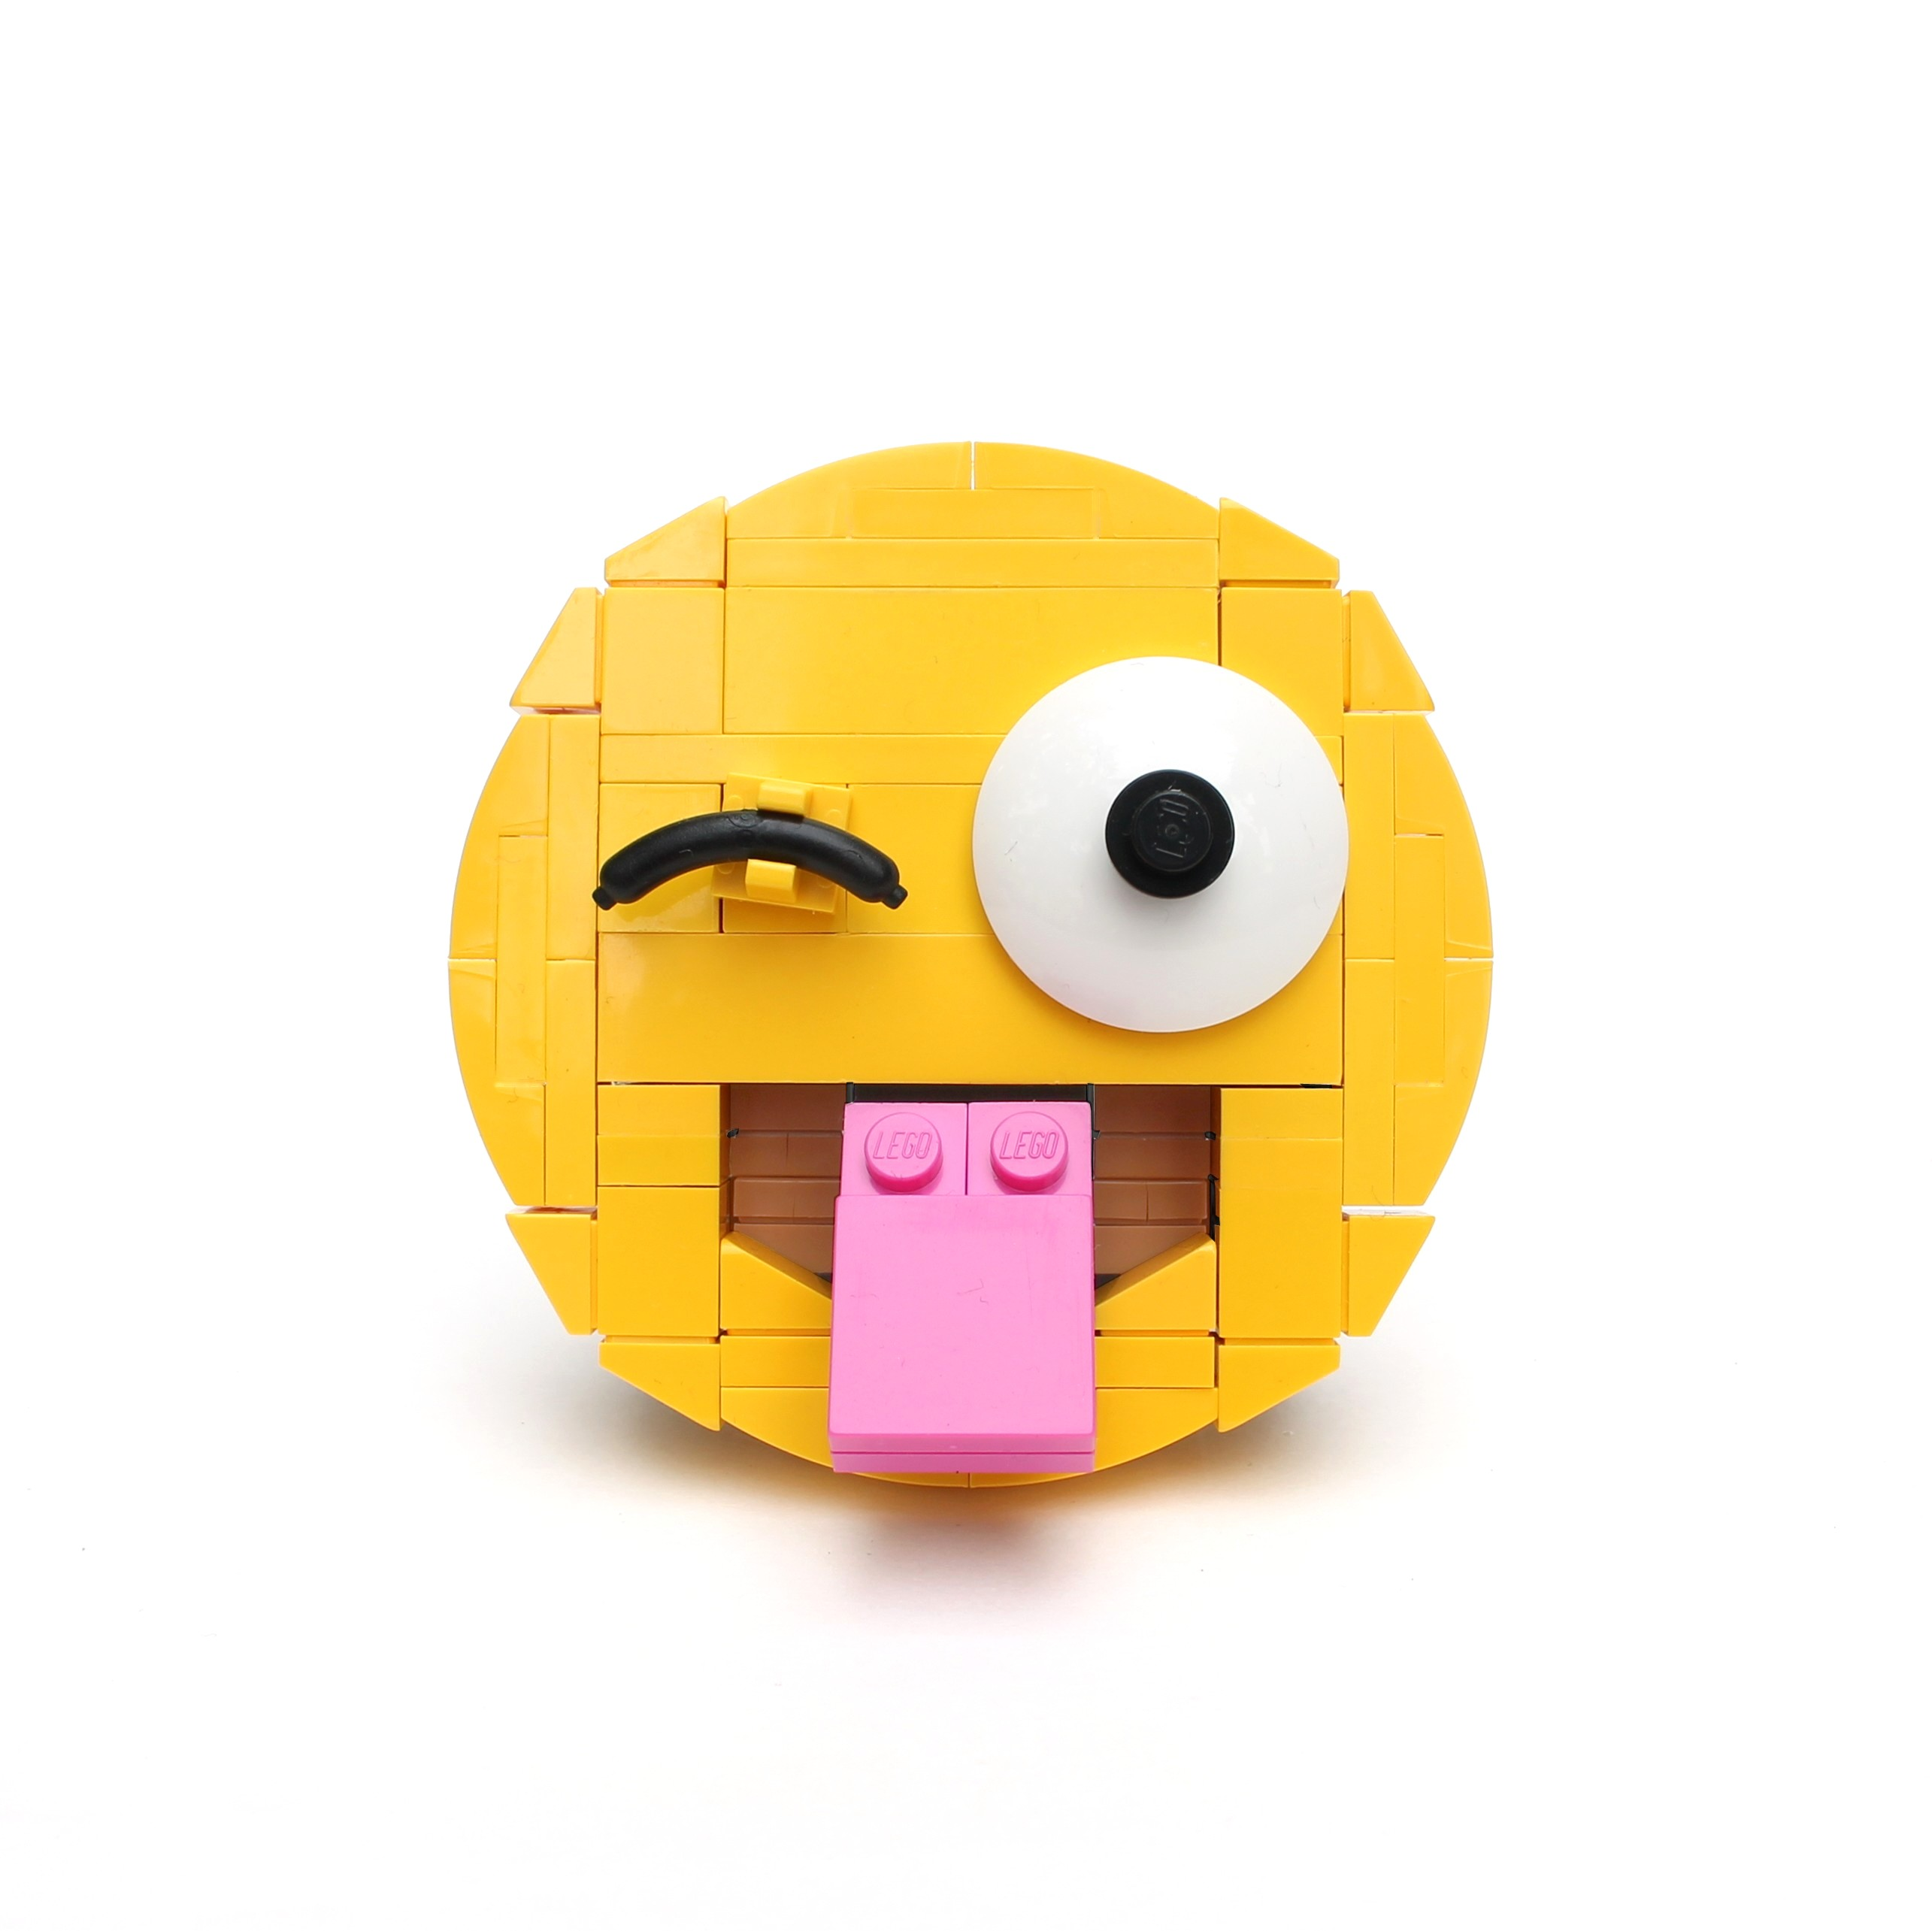 Brick-moji - Face with stuck-out tongue and winking eye